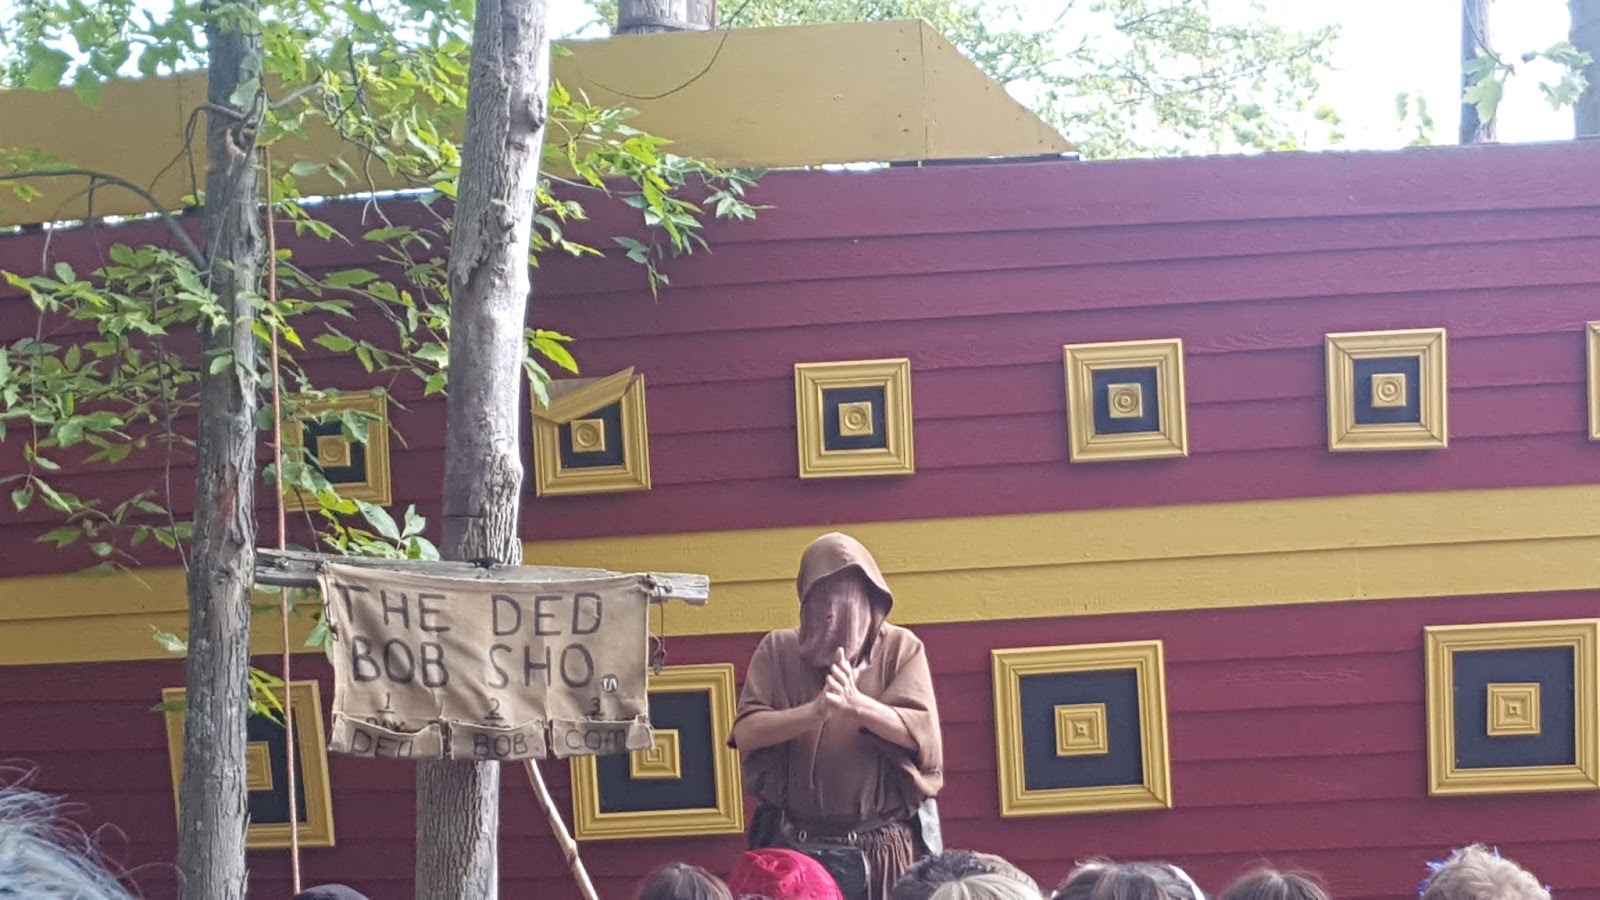 Review: Michigan Renaissance Festival, Holly, MI - open through Oct. 1